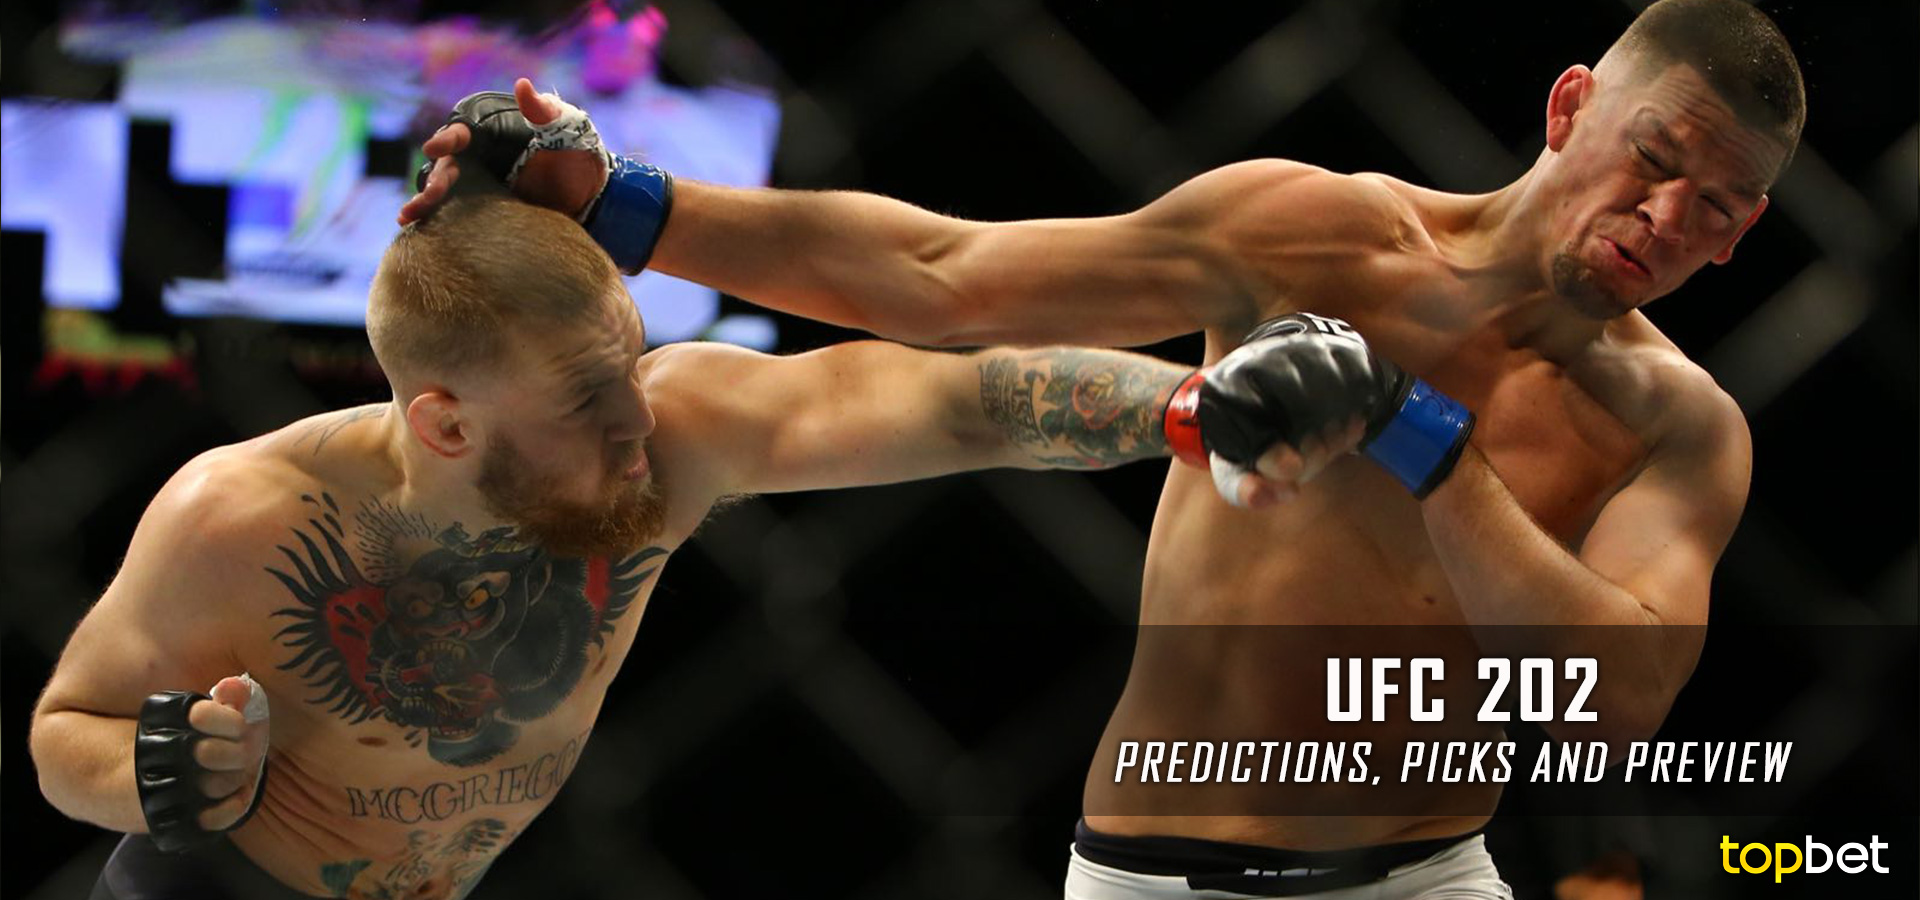 UFC 226 FS1 Preliminary Card Betting Odds